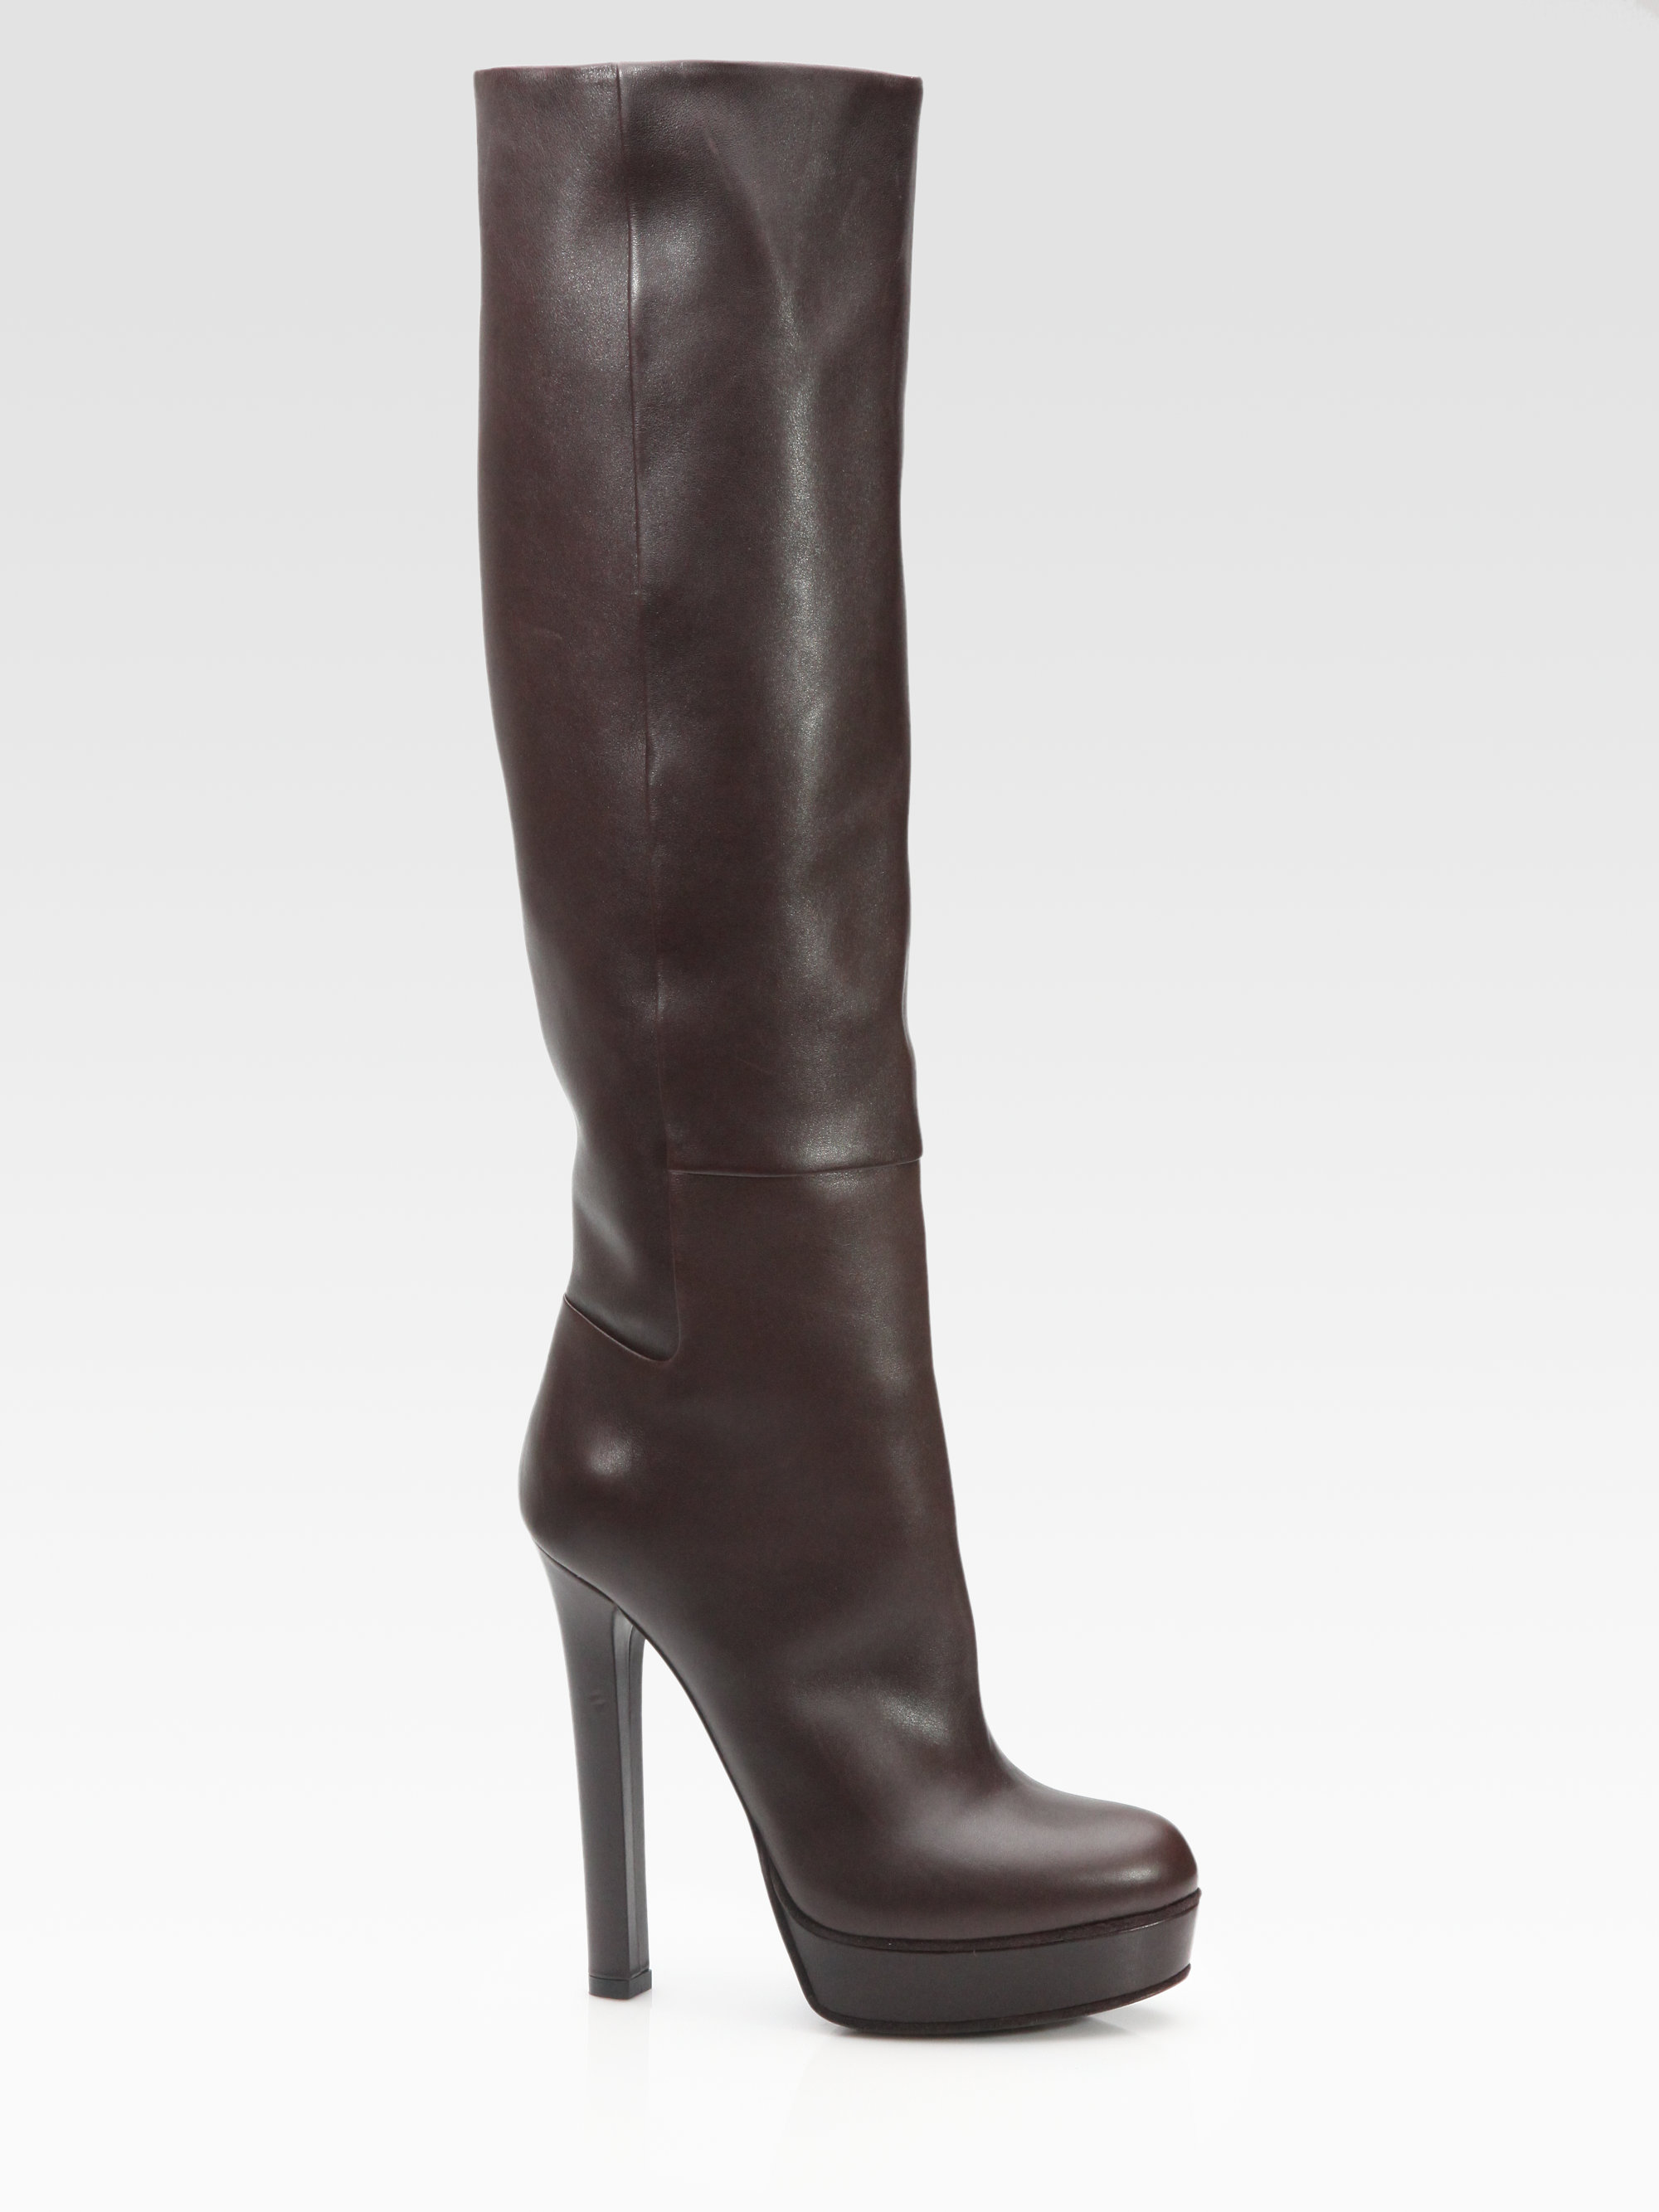 2fdd8472602c Lyst - Gucci Alexa Leather Knee-High Platform Boots in Brown